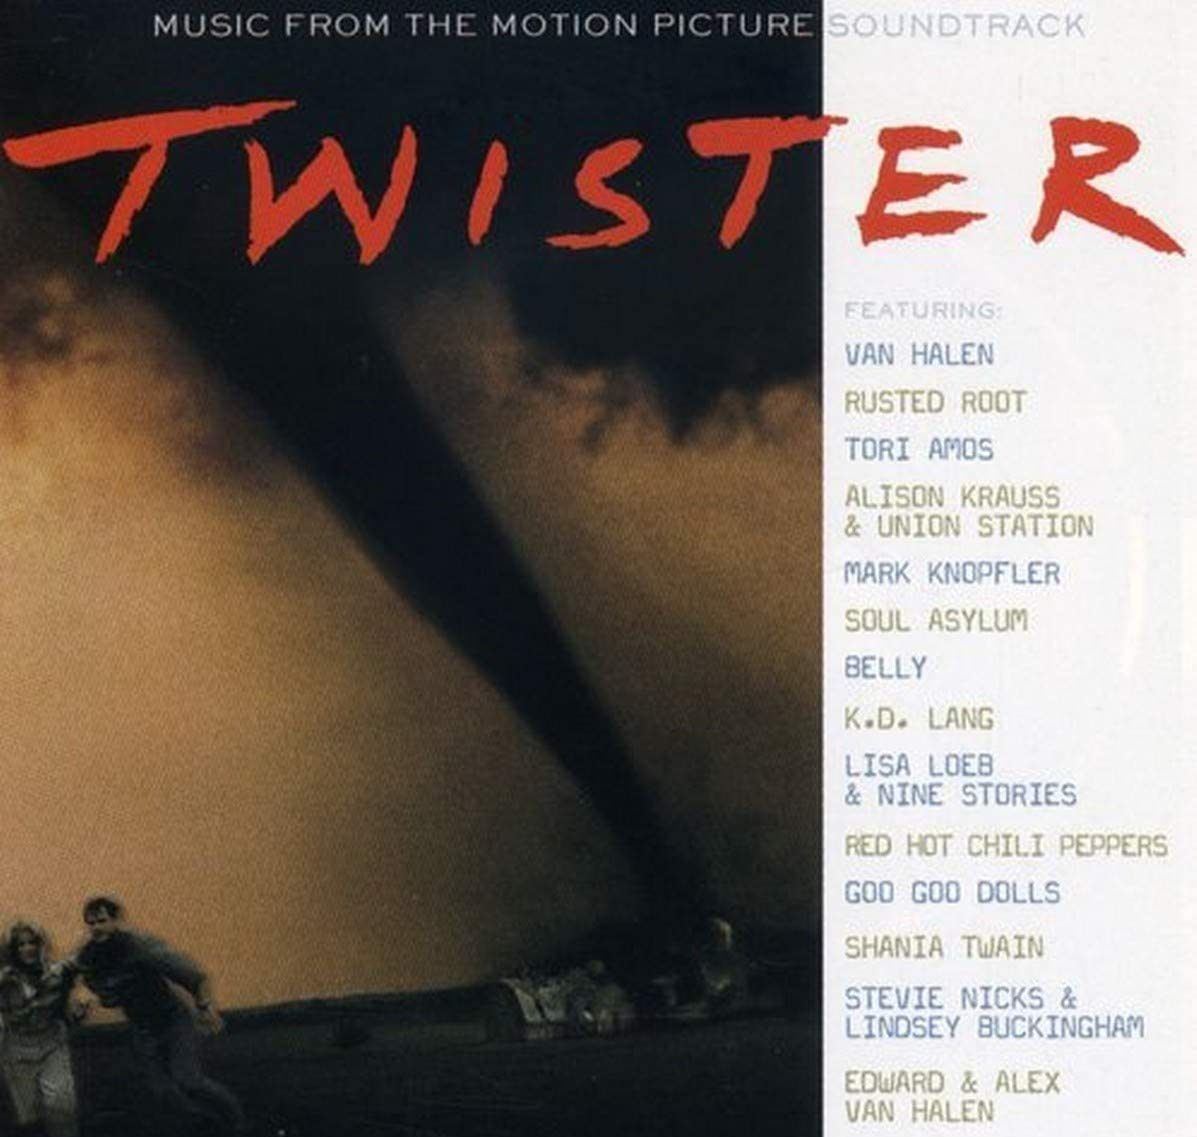 61FMe4hmV0L. AC SL1200 e1620740492451 Twister: 20 Facts About The 1996 Blockbuster That Will Blow You Away